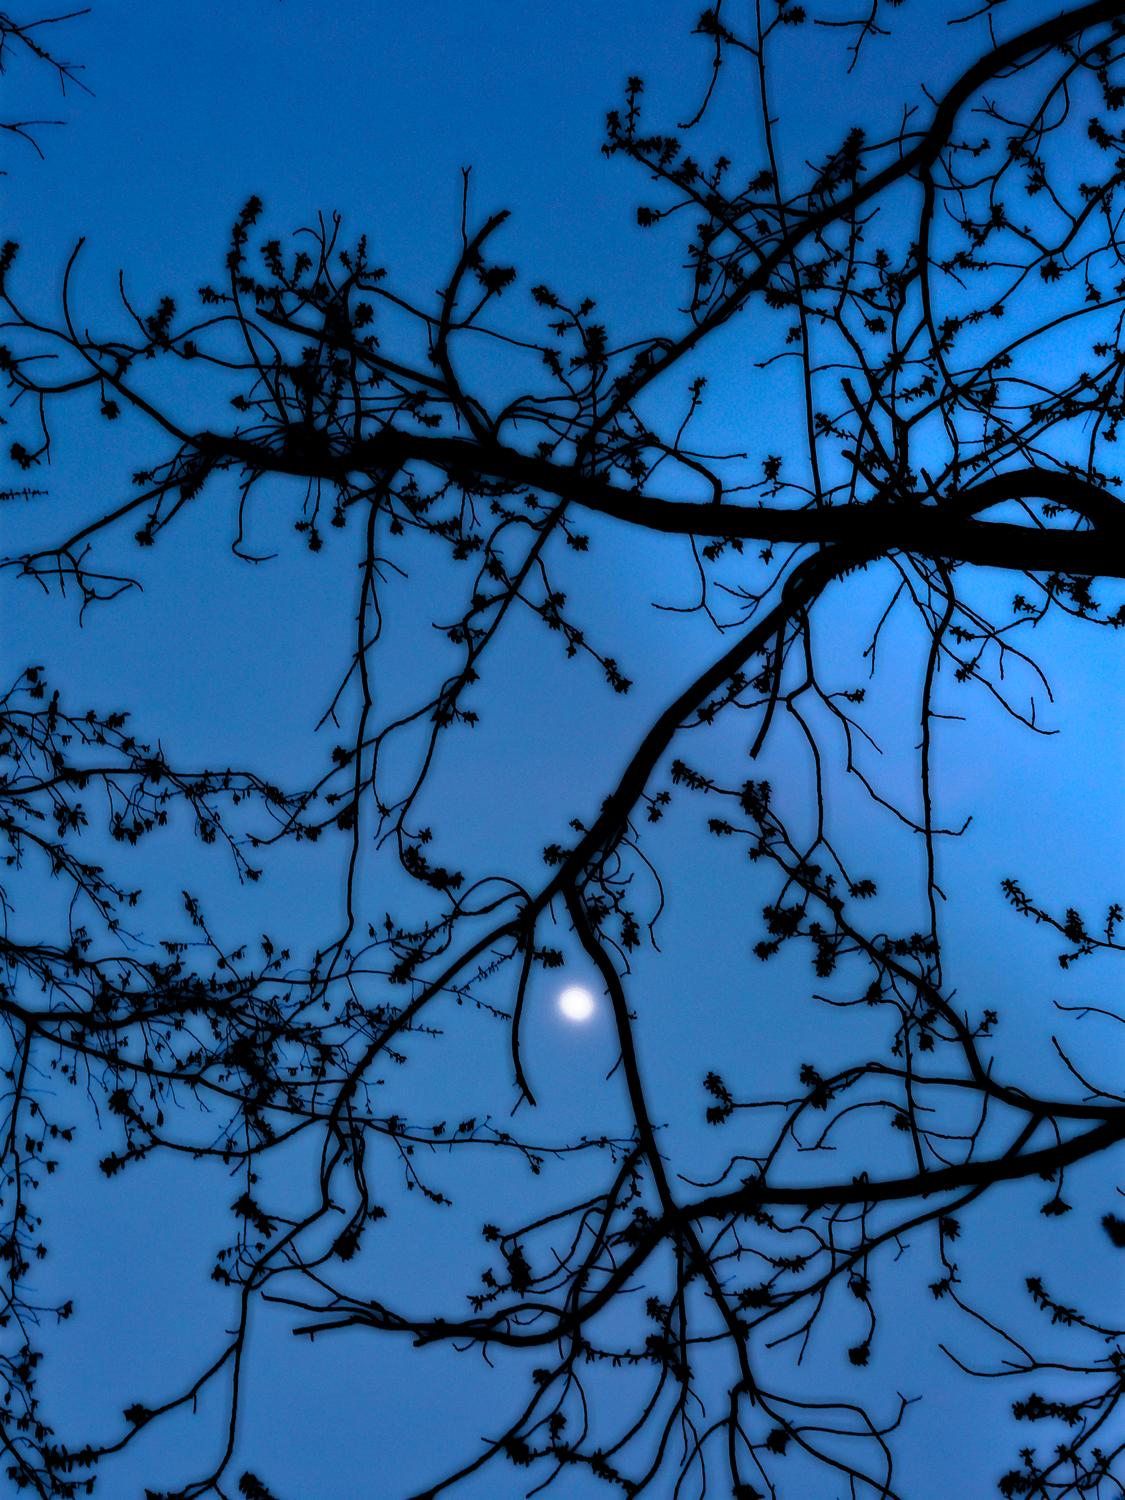 - Moon in the tree</Center><p></p> - Techno-Impressionist Museum - Techno-Impressionism - art - beautiful - photo photography picture - by Tony Karp